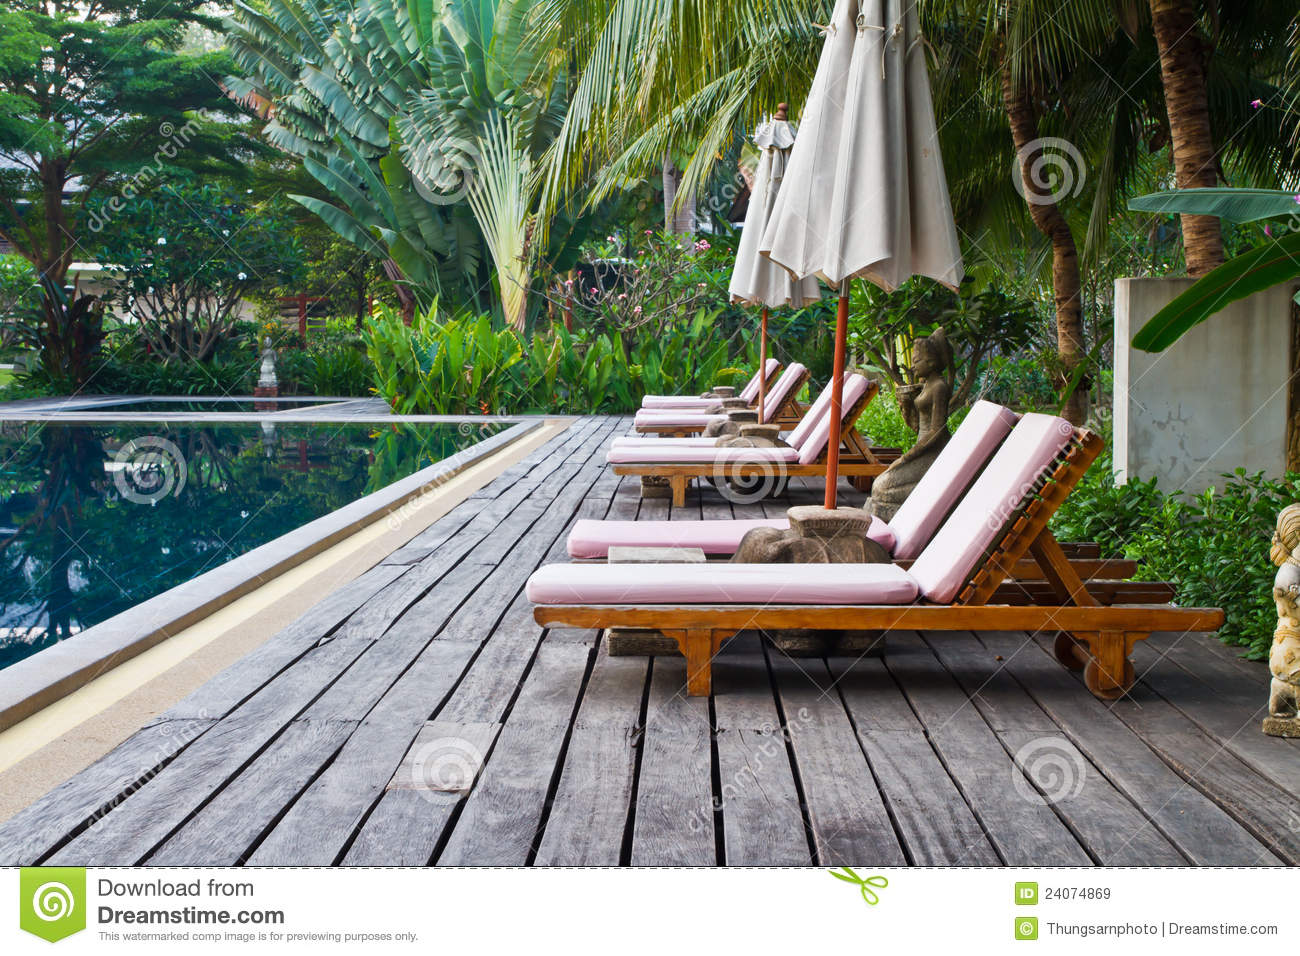 Chairs On A Pool Deck Royalty Free Stock Images - Image: 24074869